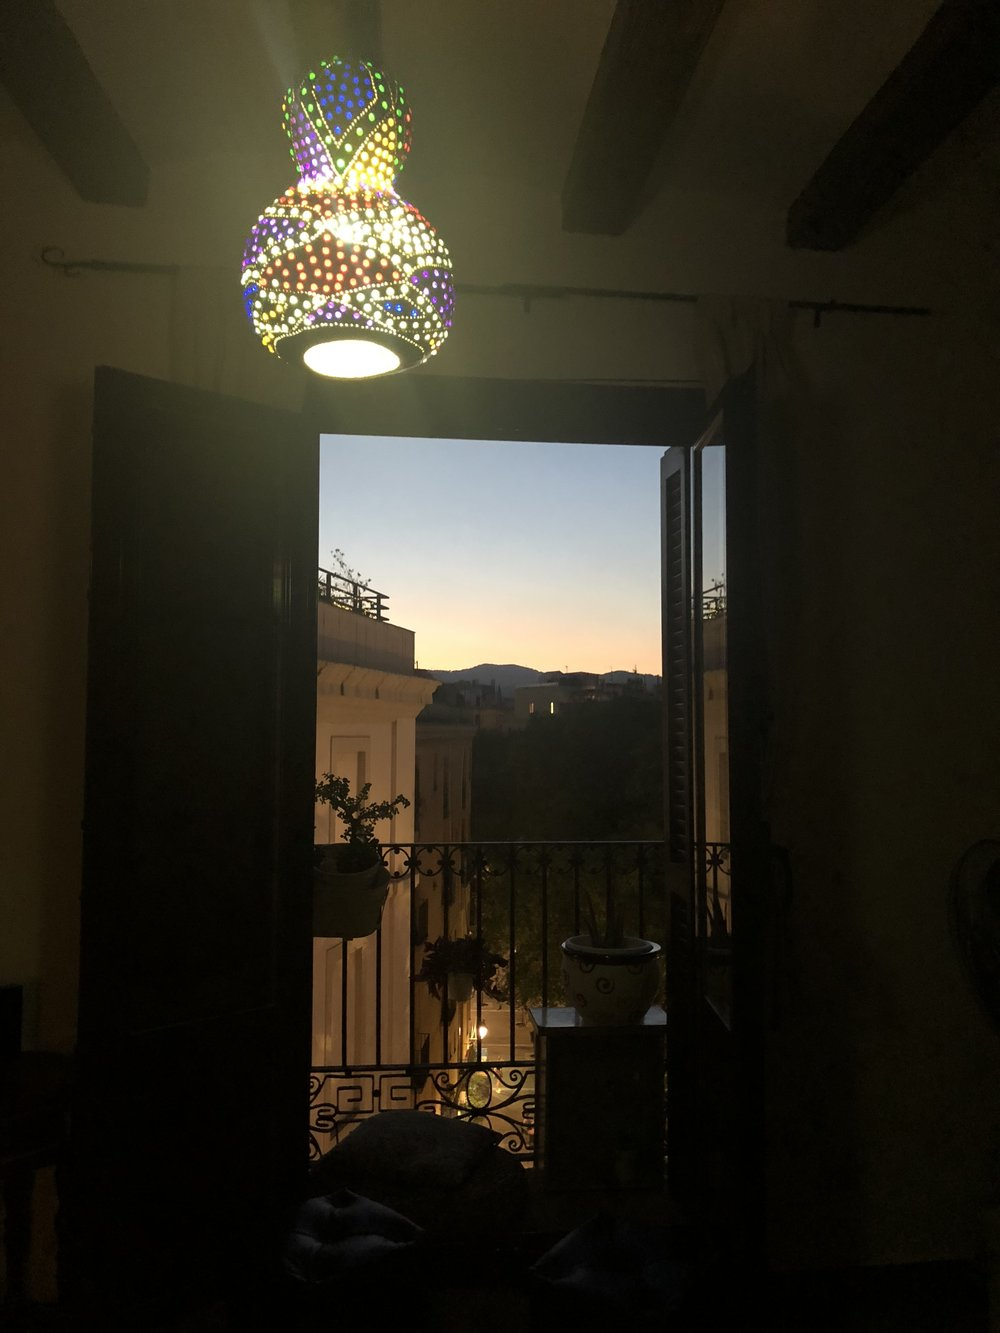 Sunset street view from the Airbnb